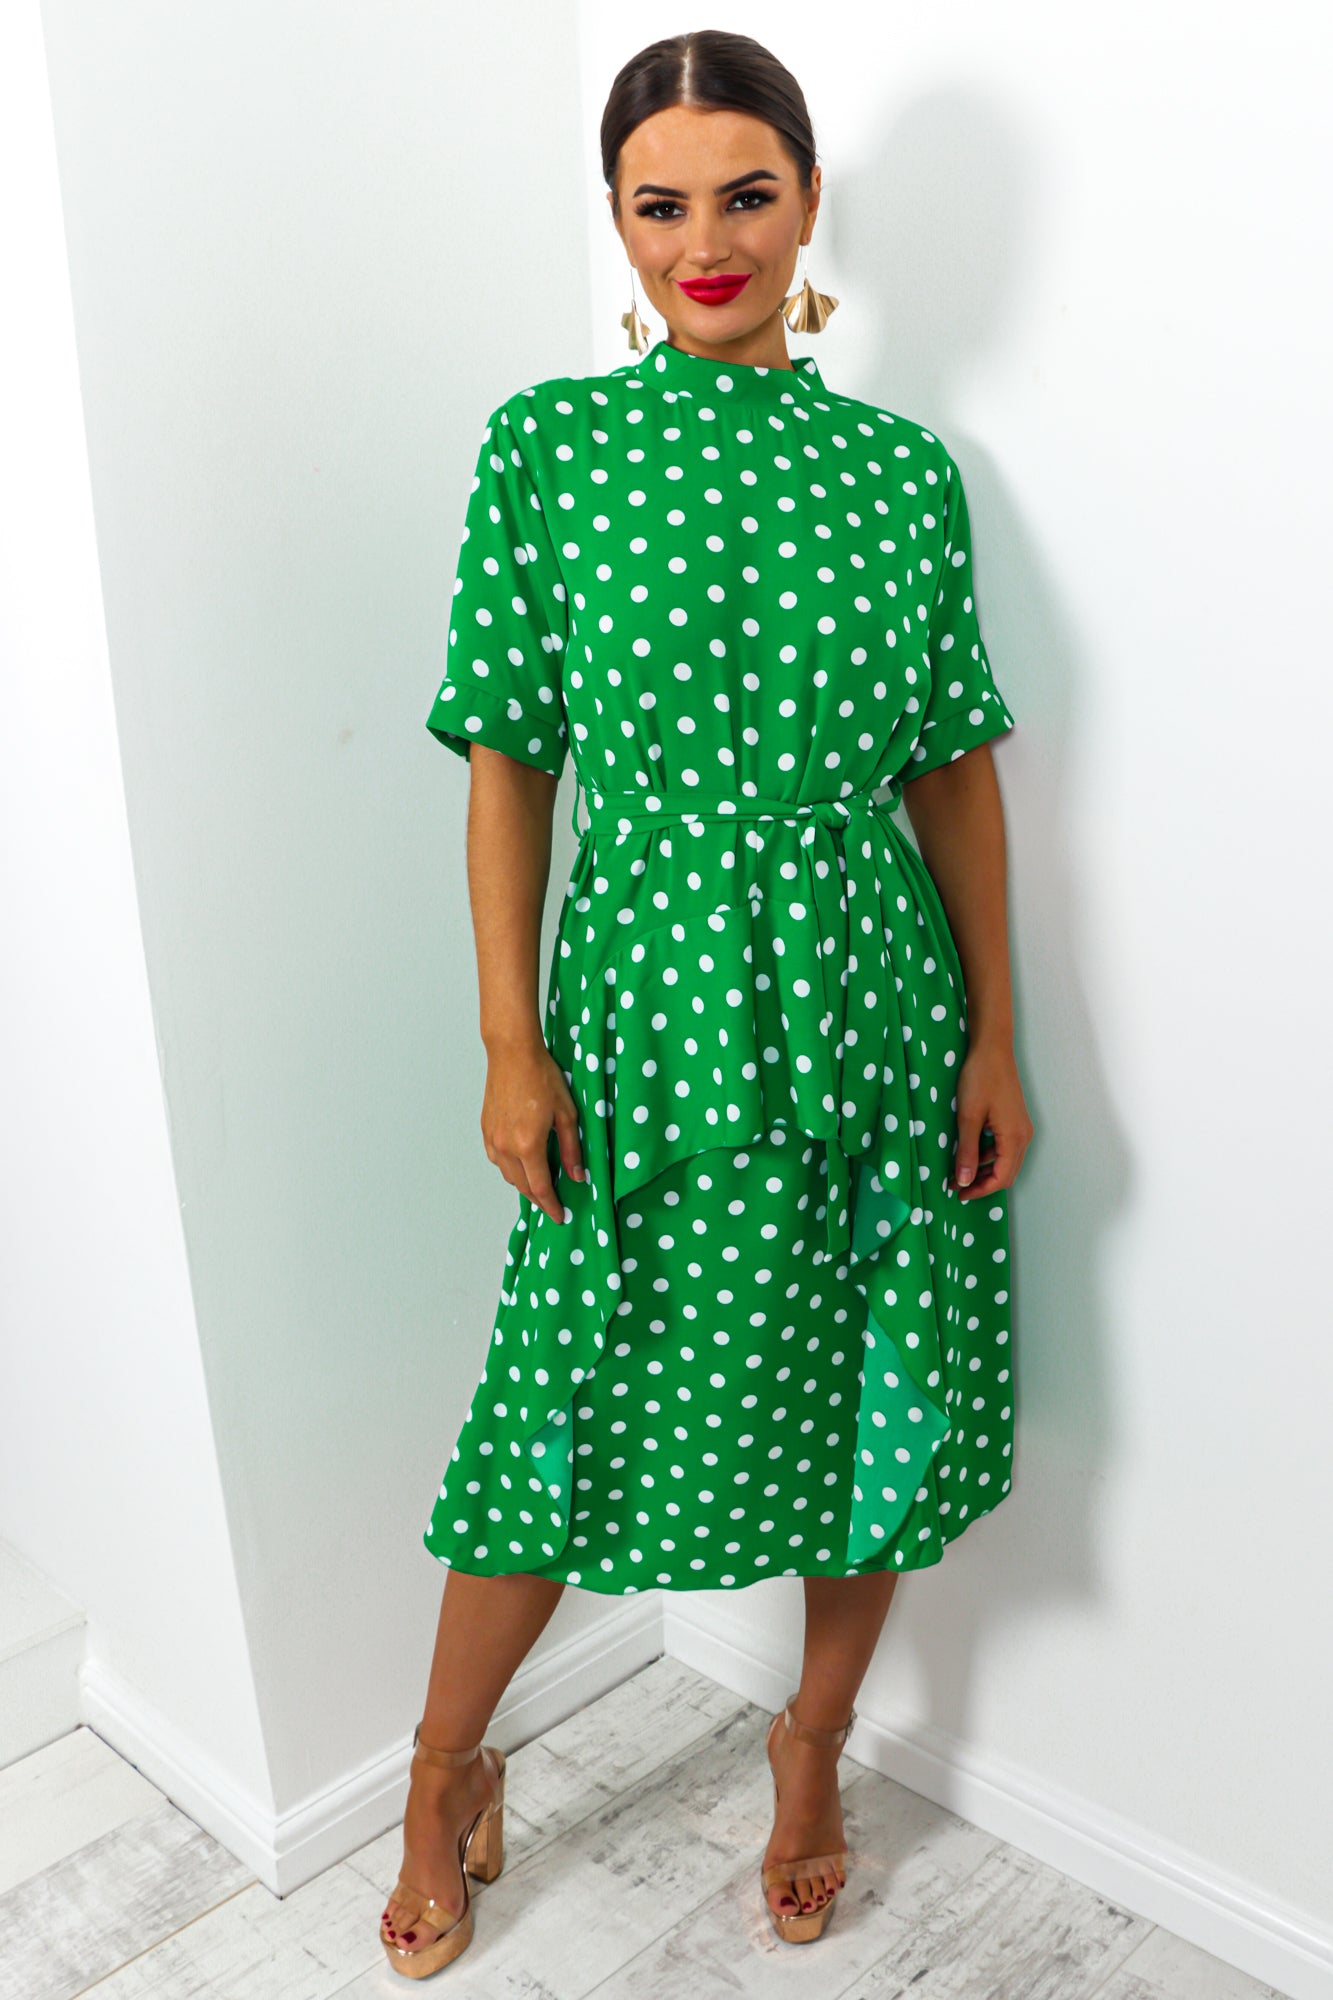 Afternoon Tea - Dress In GREEN/POLKA-DOT